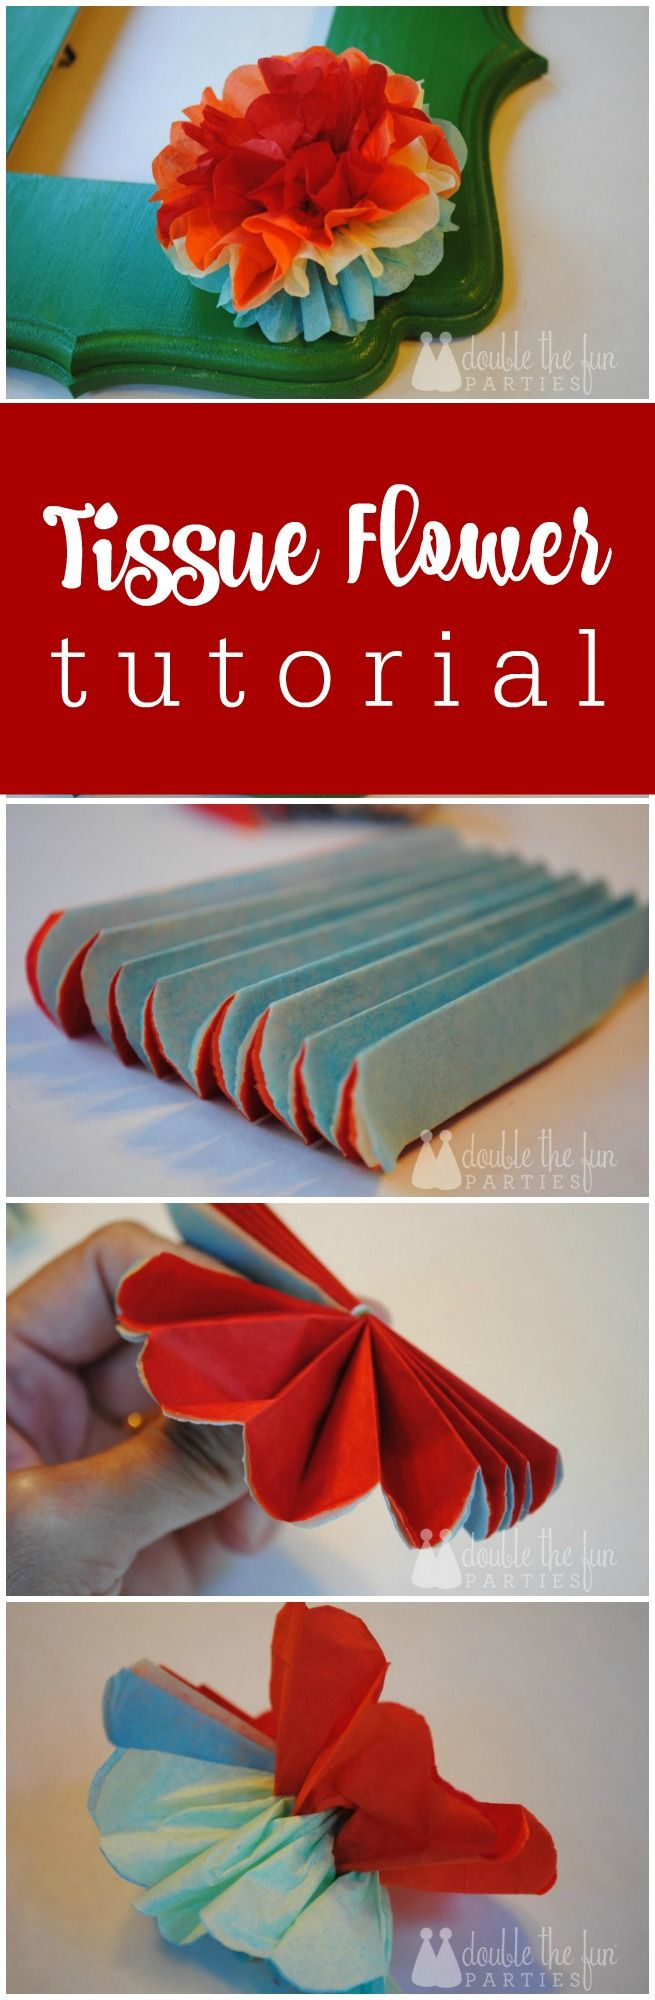 Mexican tissue flower tutorial by The Party Teacher | http://thepartyteacher.com/2013/11/04/tutorial-mexican-tissue-flowers-fit-for-a-fiesta/